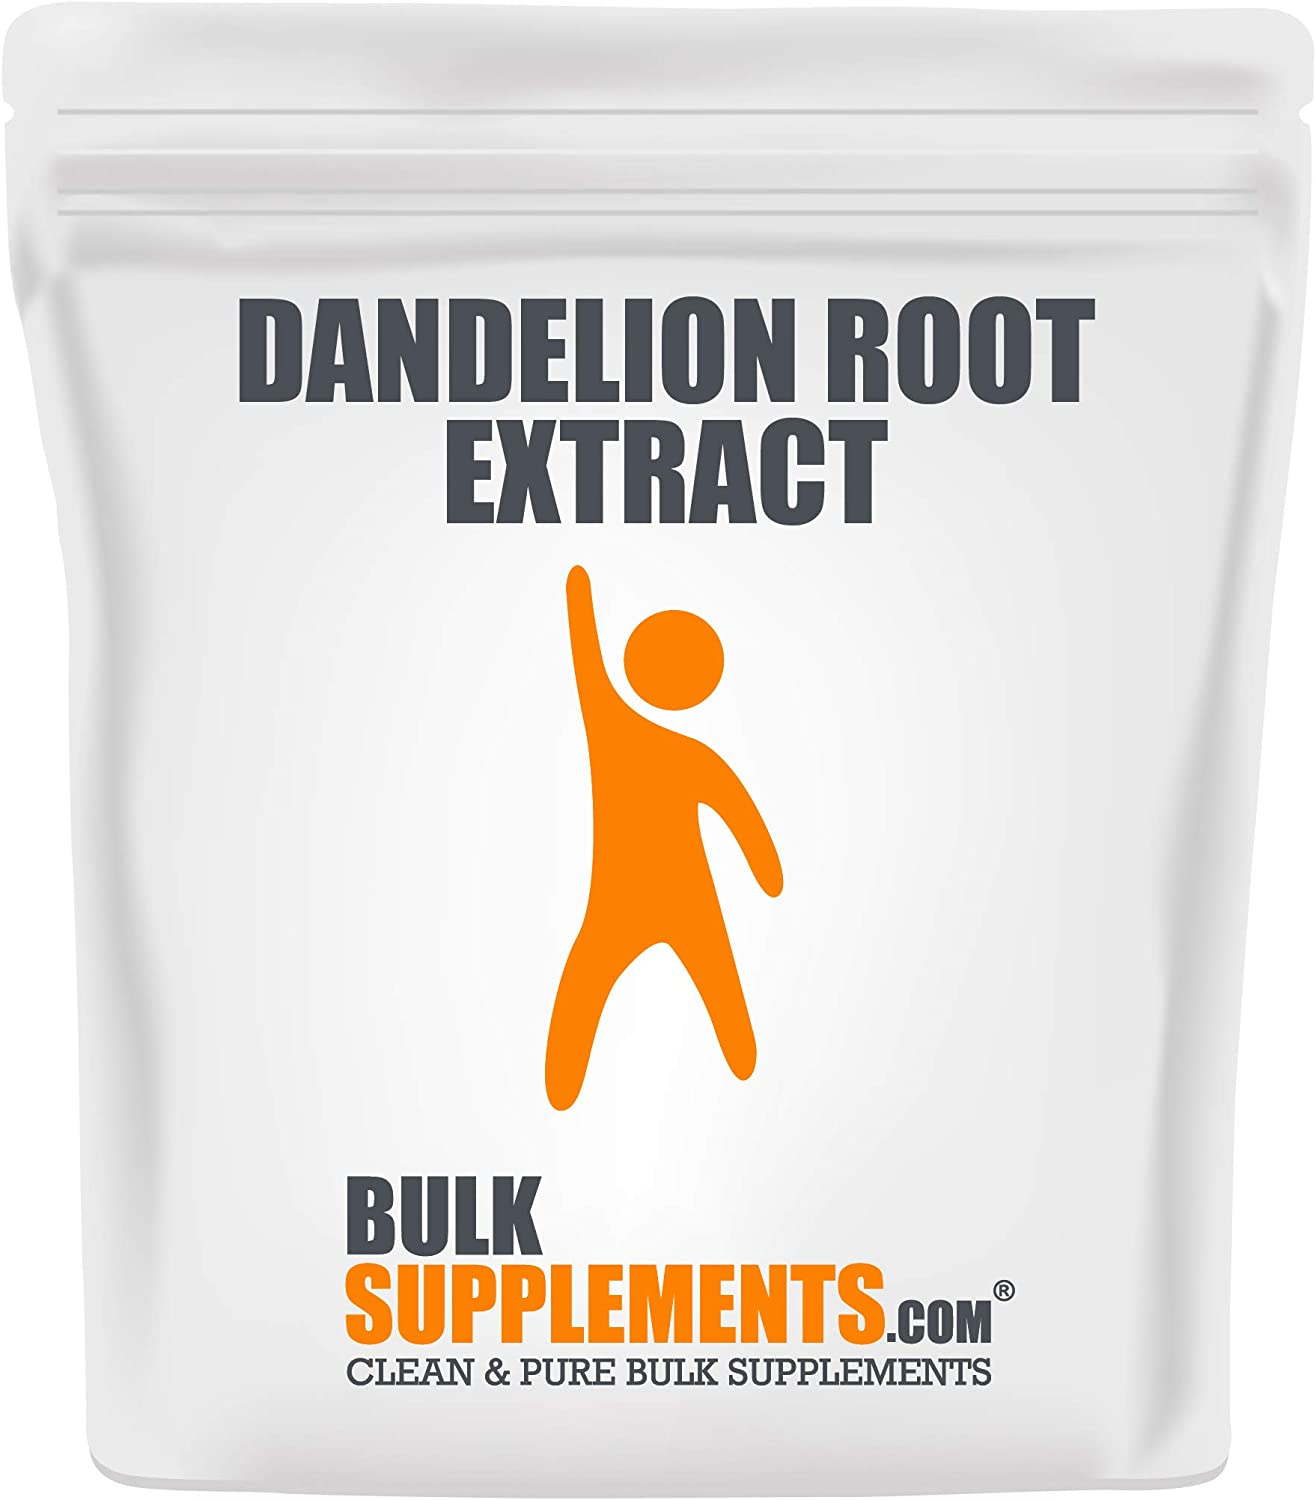 BulkSupplements.com Limited price sale Dandelion Root Extract Powder - Popular brand in the world Ex